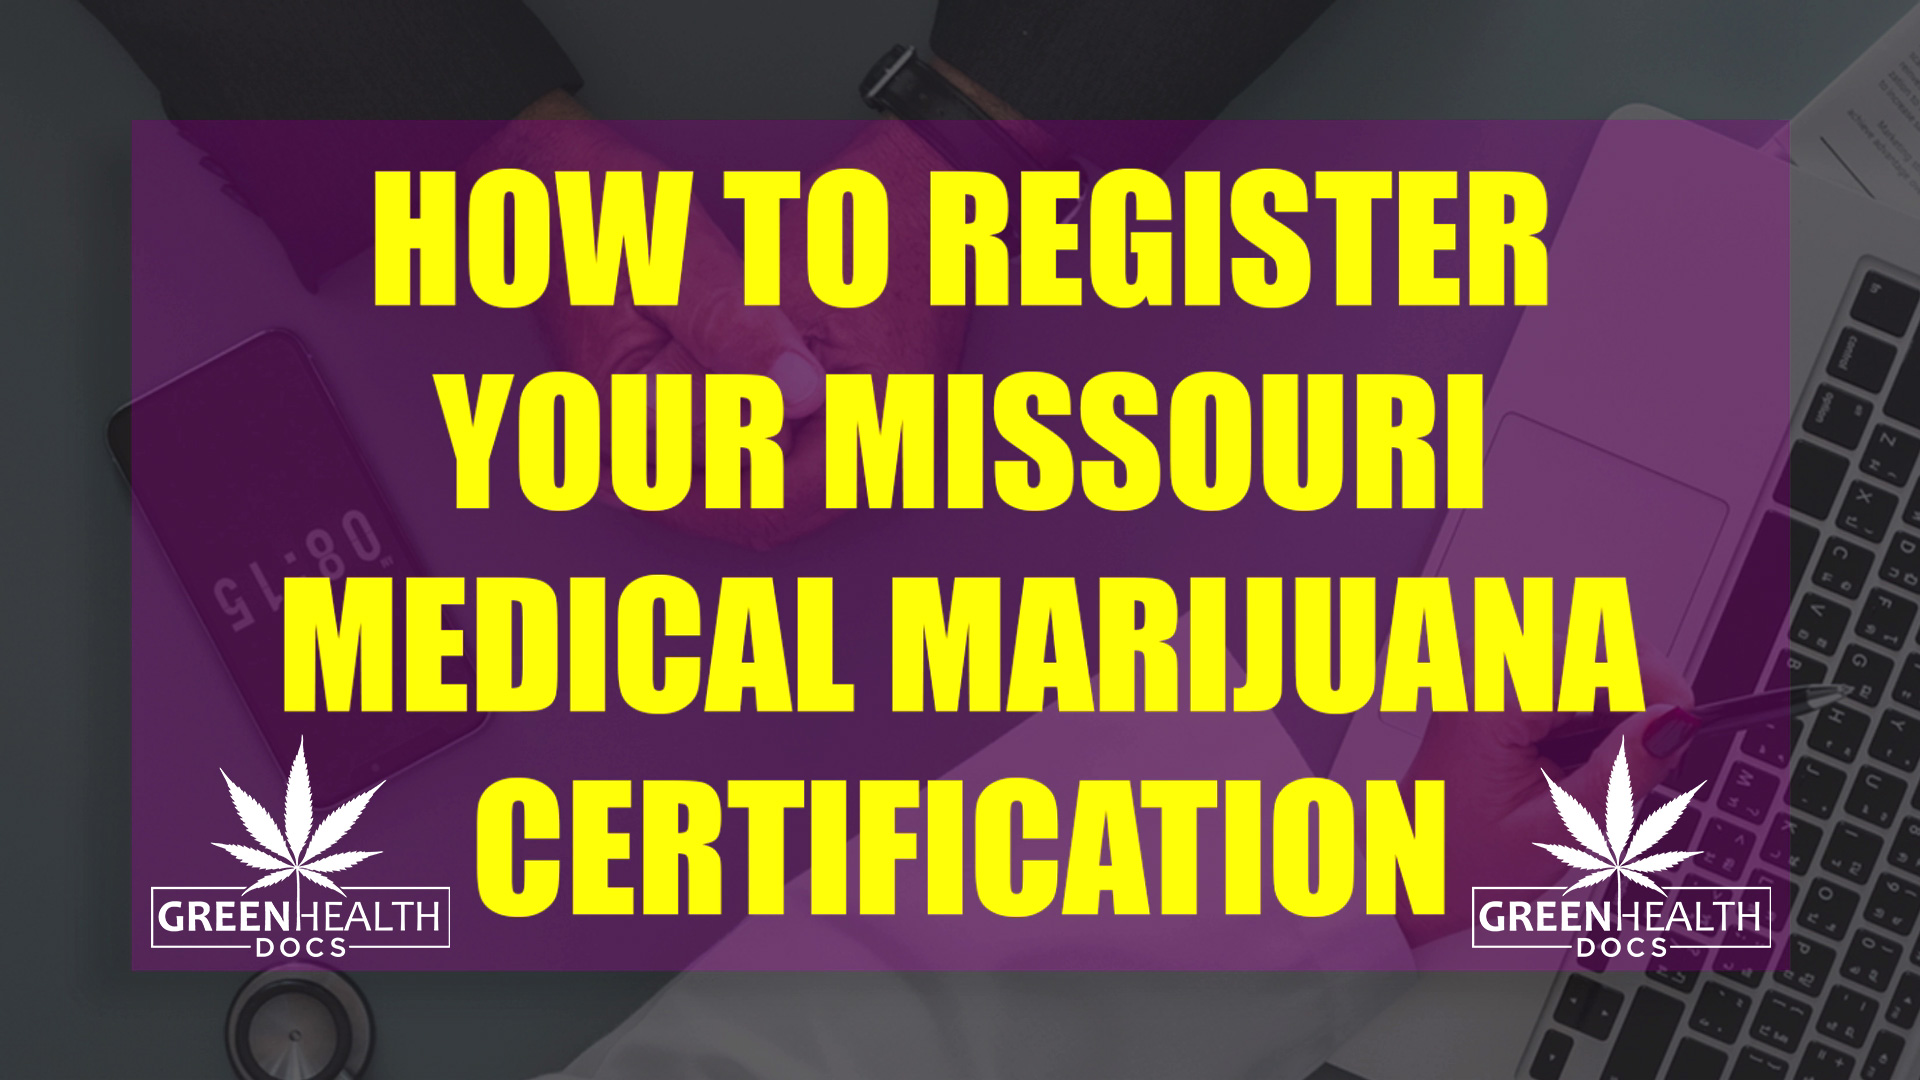 Medical Marijuana Certification